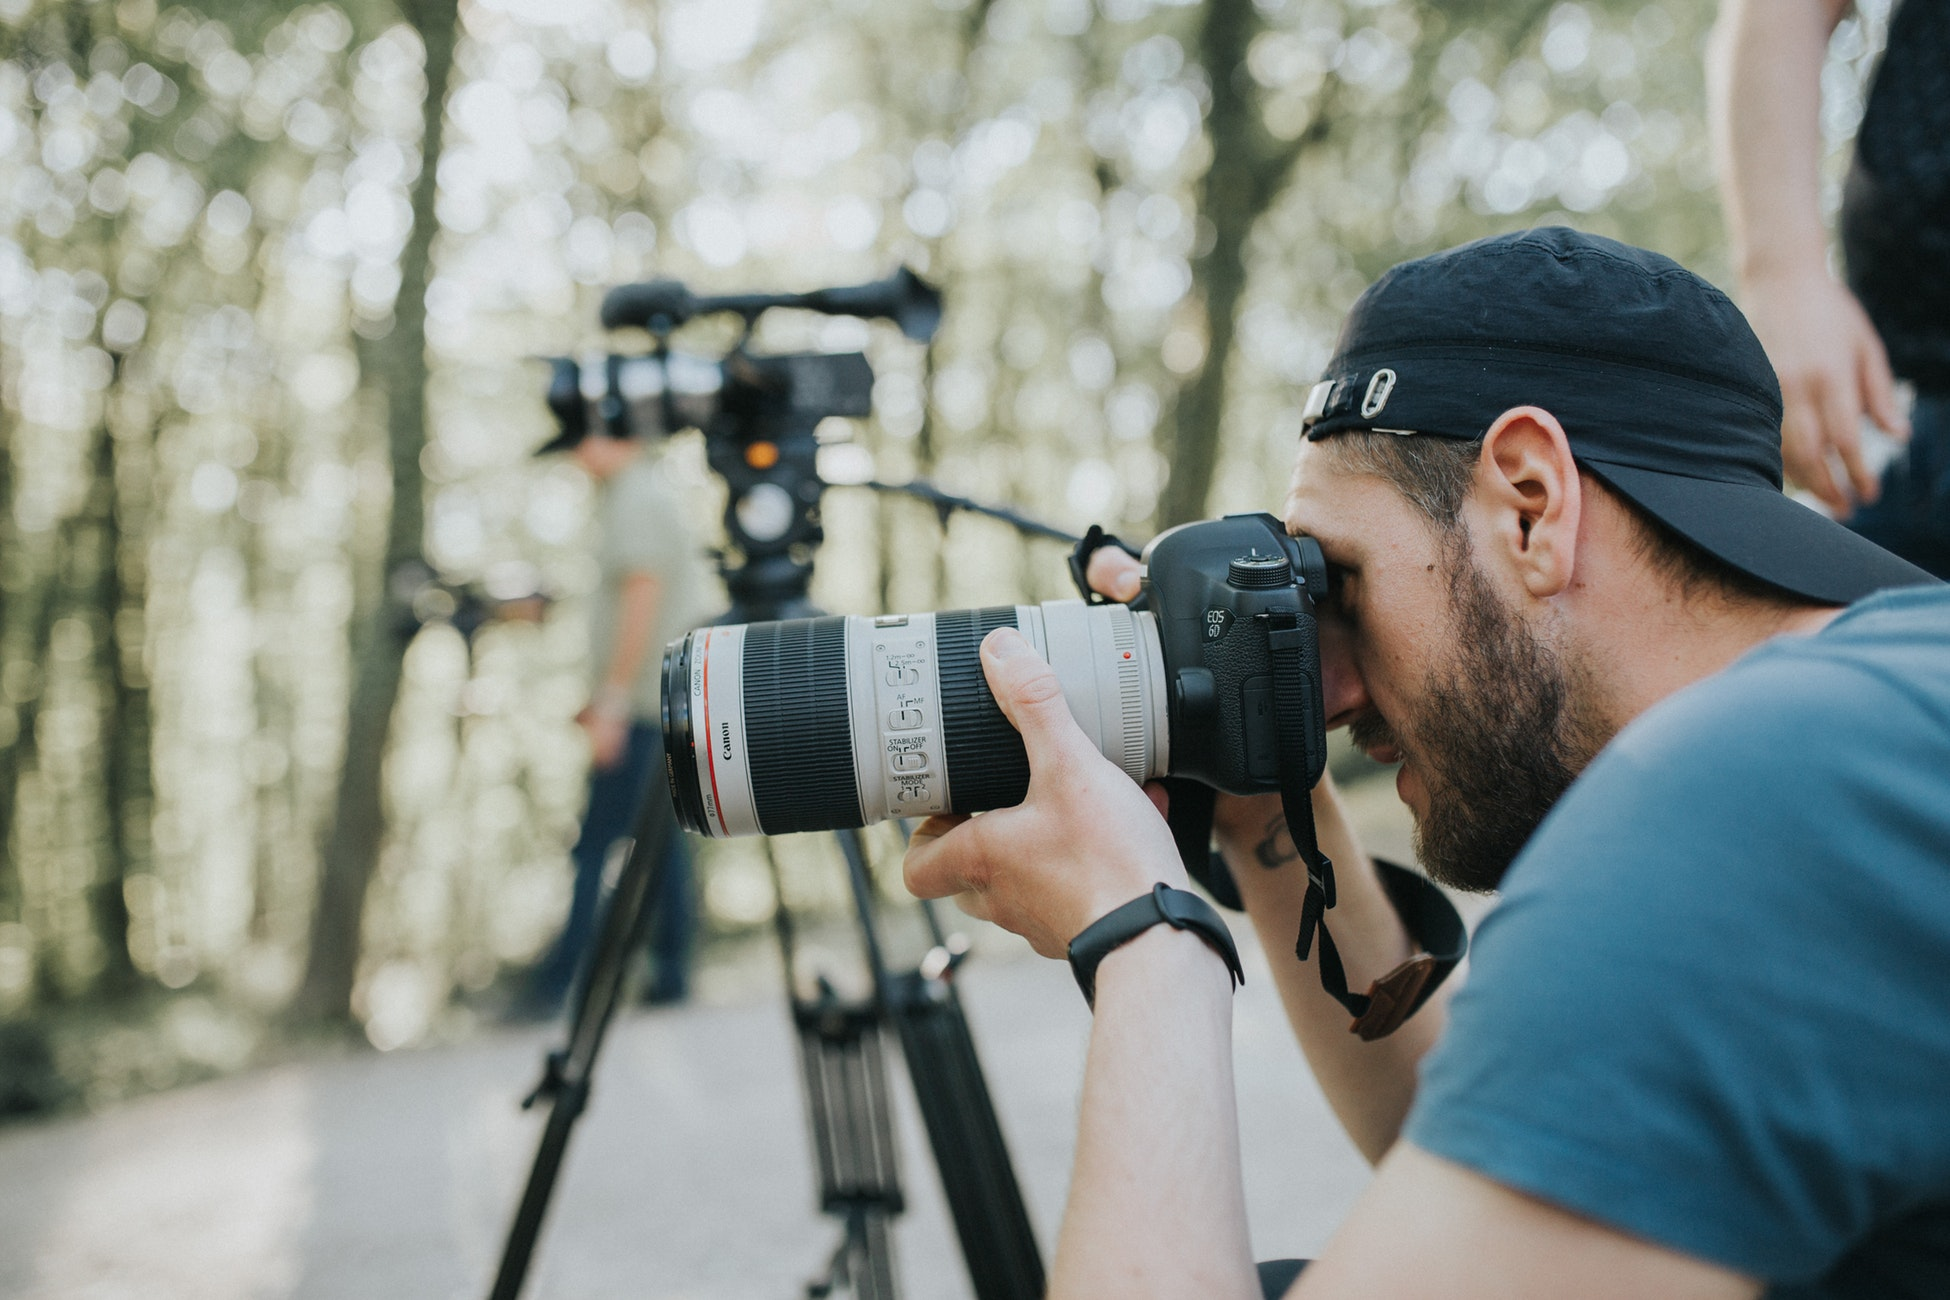 Finding A Professional For Your Wedding Photography